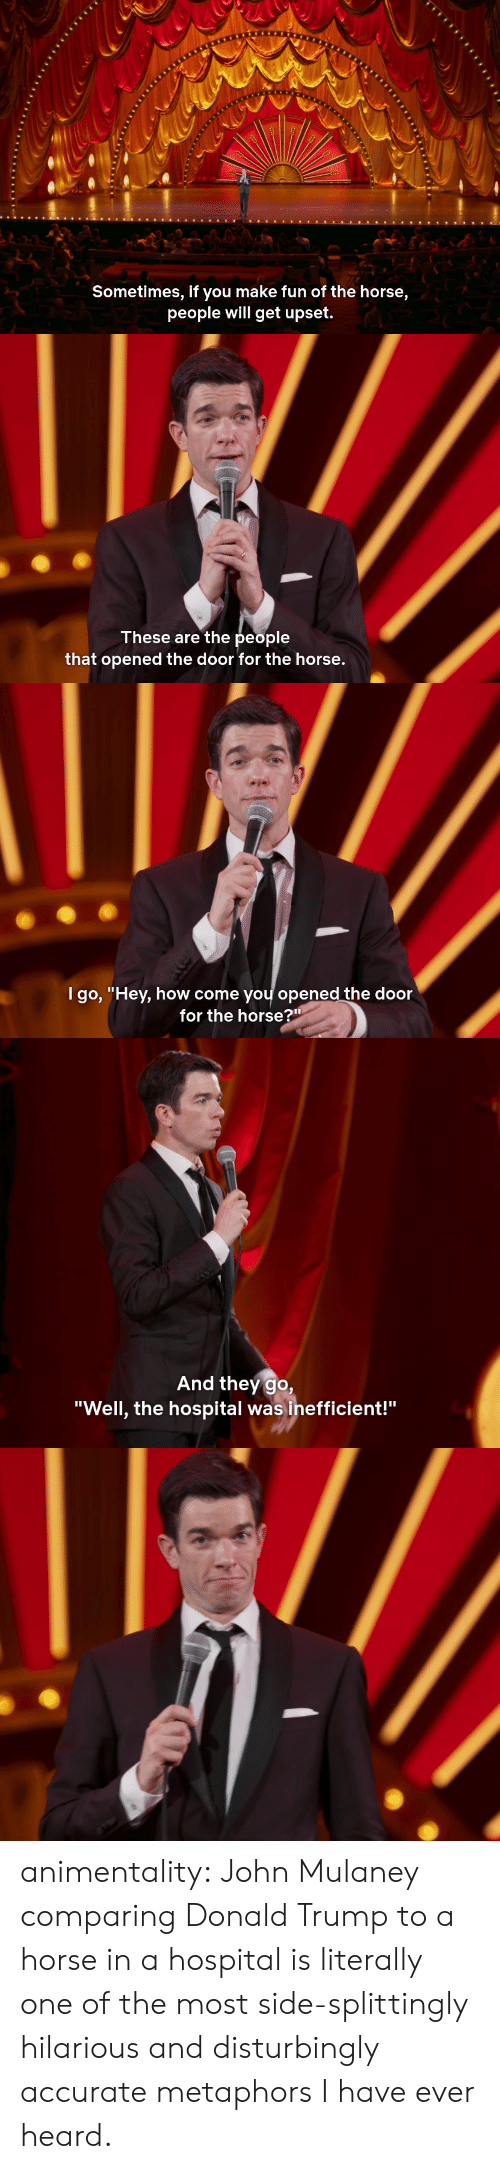 "metaphors: Sometimes, if you make fun of the horse,  people will get upset.   These are the people  that opened the door for the horse.   l go, ""Hev, how come vou opened the door  for the horse?""   And they go,  ""Well, the hospital was inefficient!"" animentality:  John Mulaney comparing Donald Trump to a horse in a hospital is literally one of the most side-splittingly hilarious and disturbingly accurate metaphors I have ever heard."